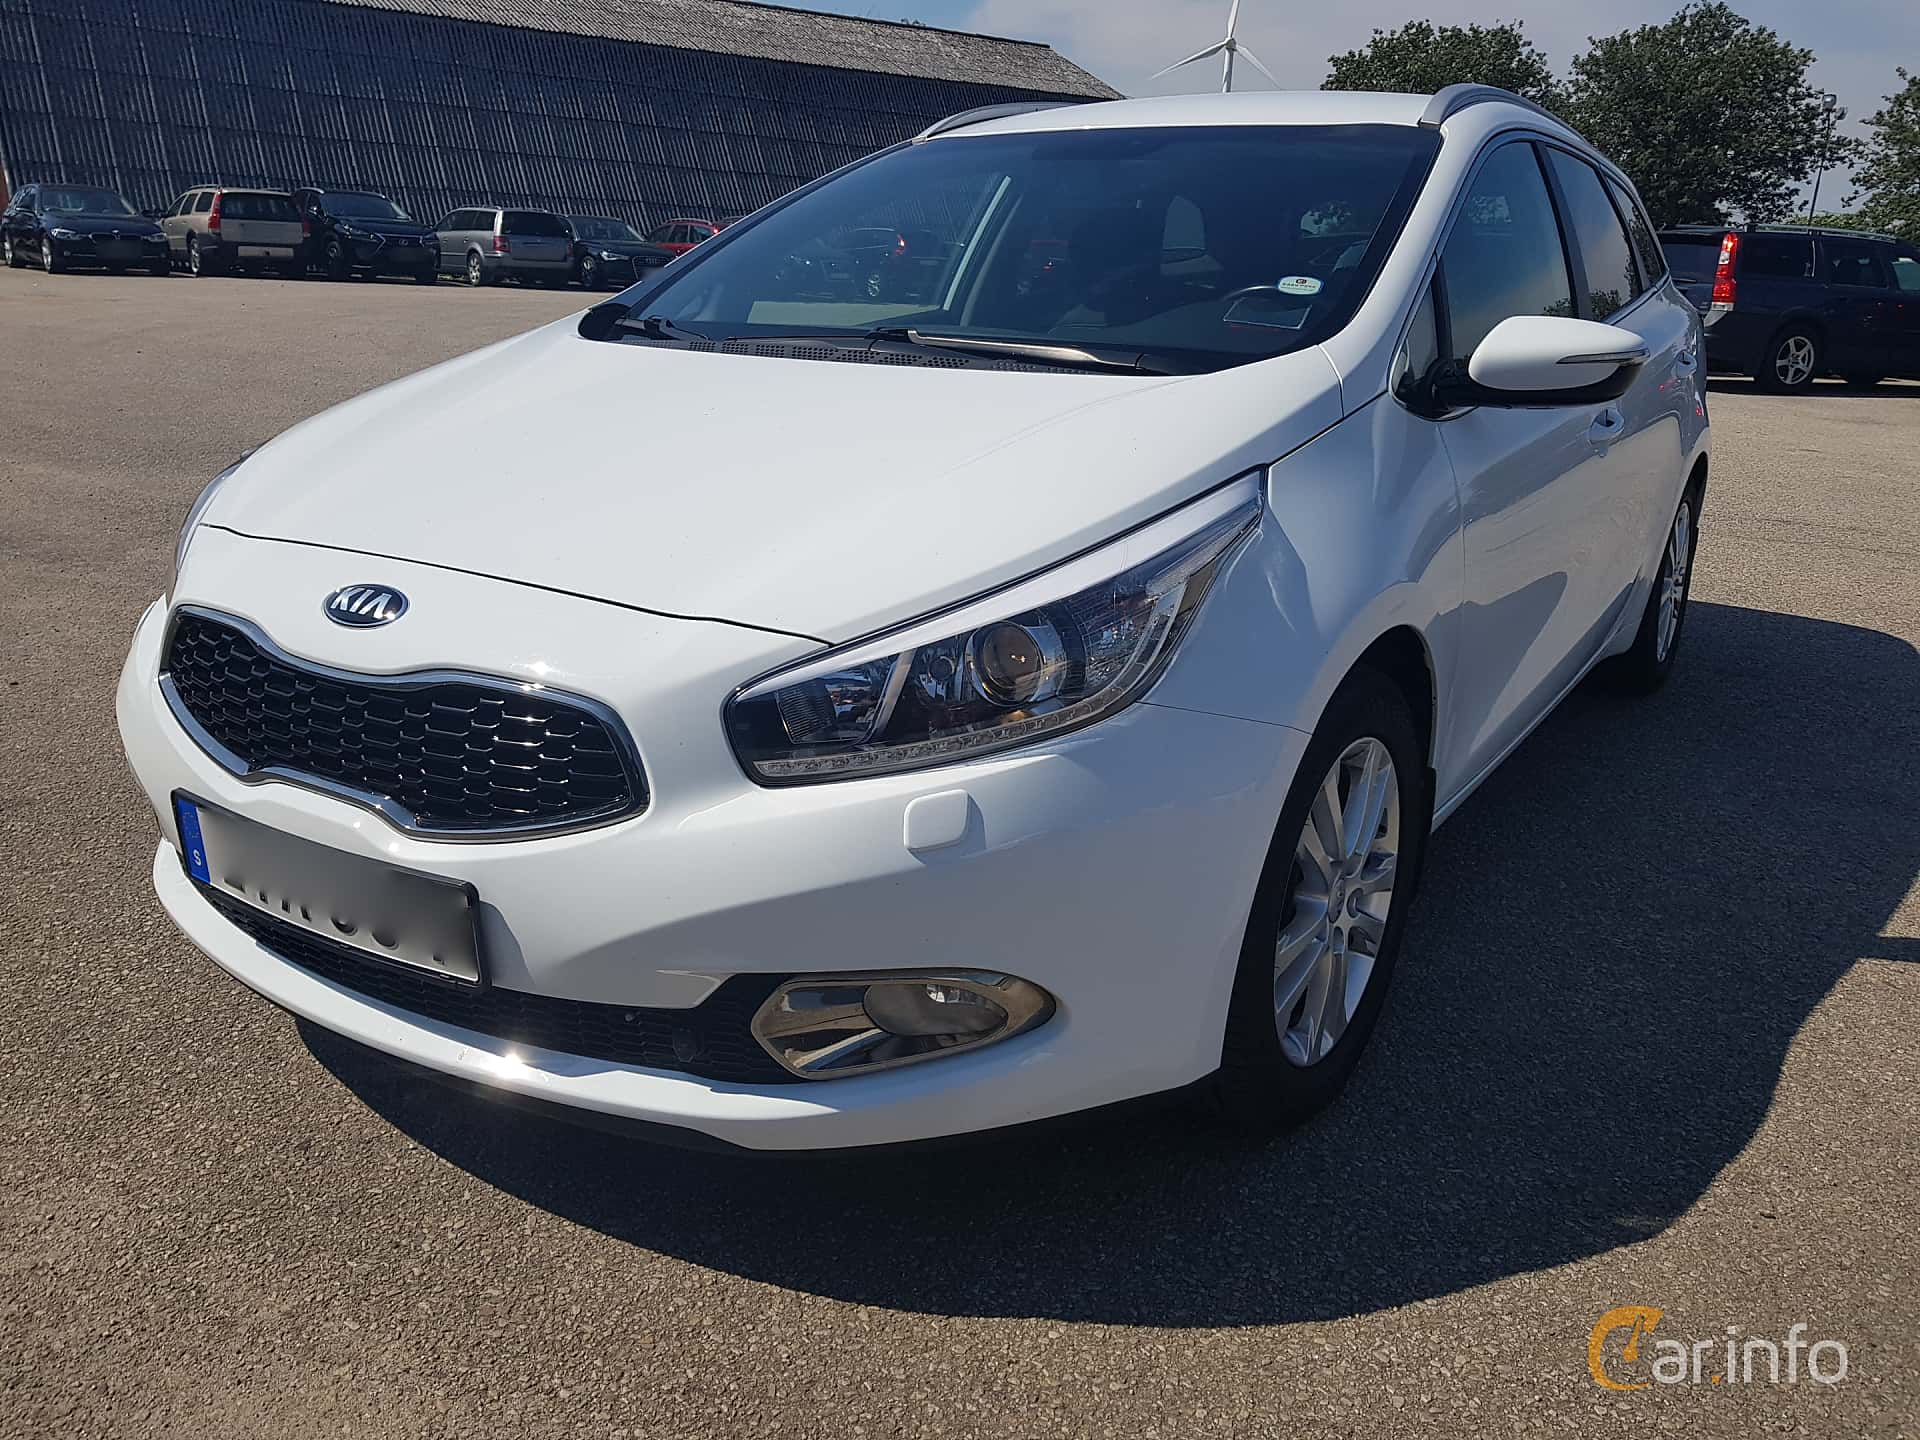 Kia cee'd_sw 1.6 CRDi Manual, 128hp, 2015